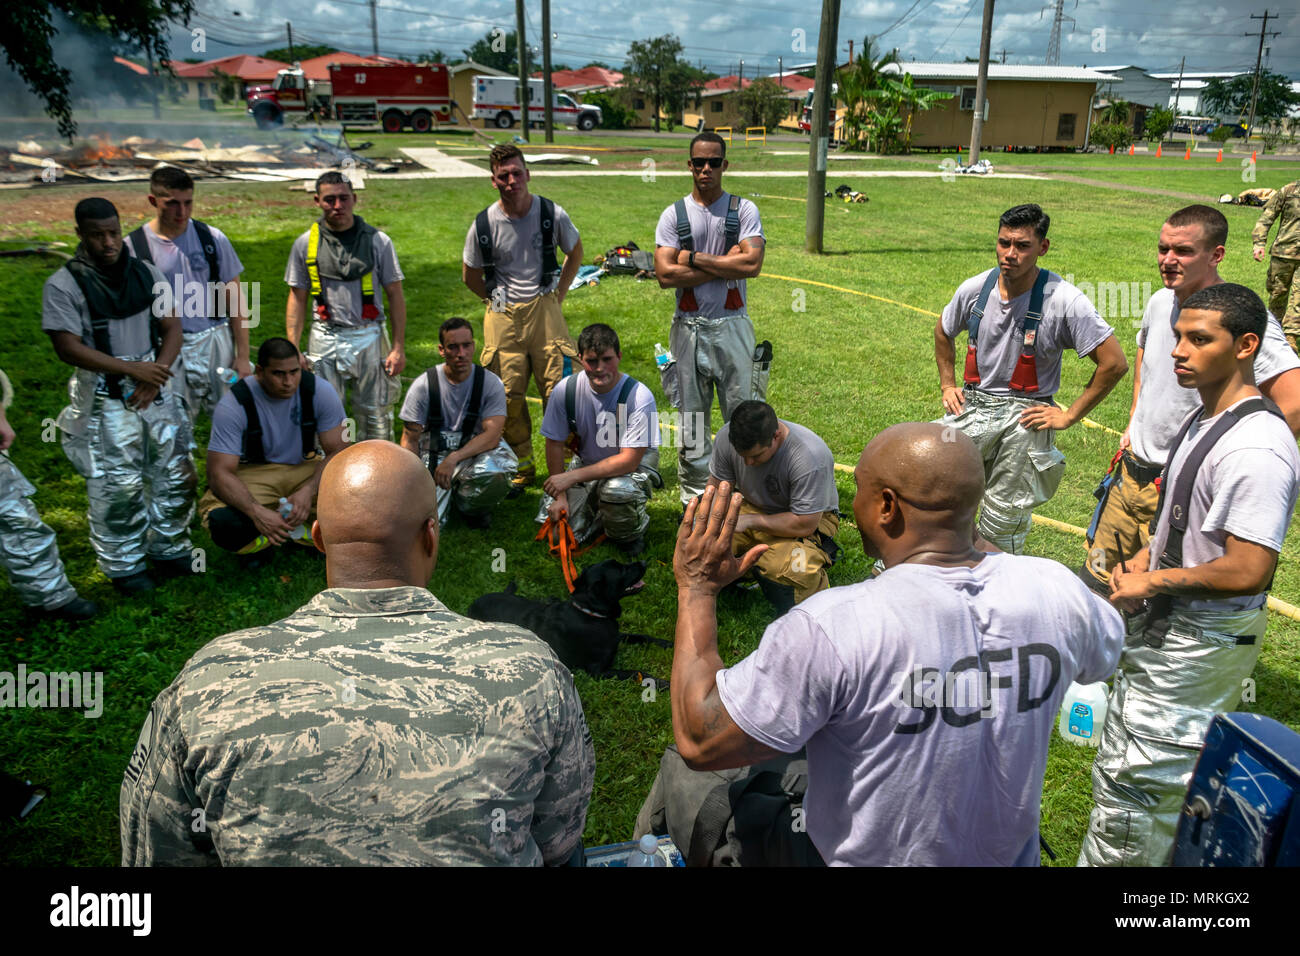 Master Sgt. Corey T. Coleman gives a debrief after the exercise. The 612th Air Base Squadron Fire Department host a public fire training at Soto Cano Air Base, June 16, 2017. (U.S. Air Force photo by Senior Airman Julie Kae/released) Stock Photo